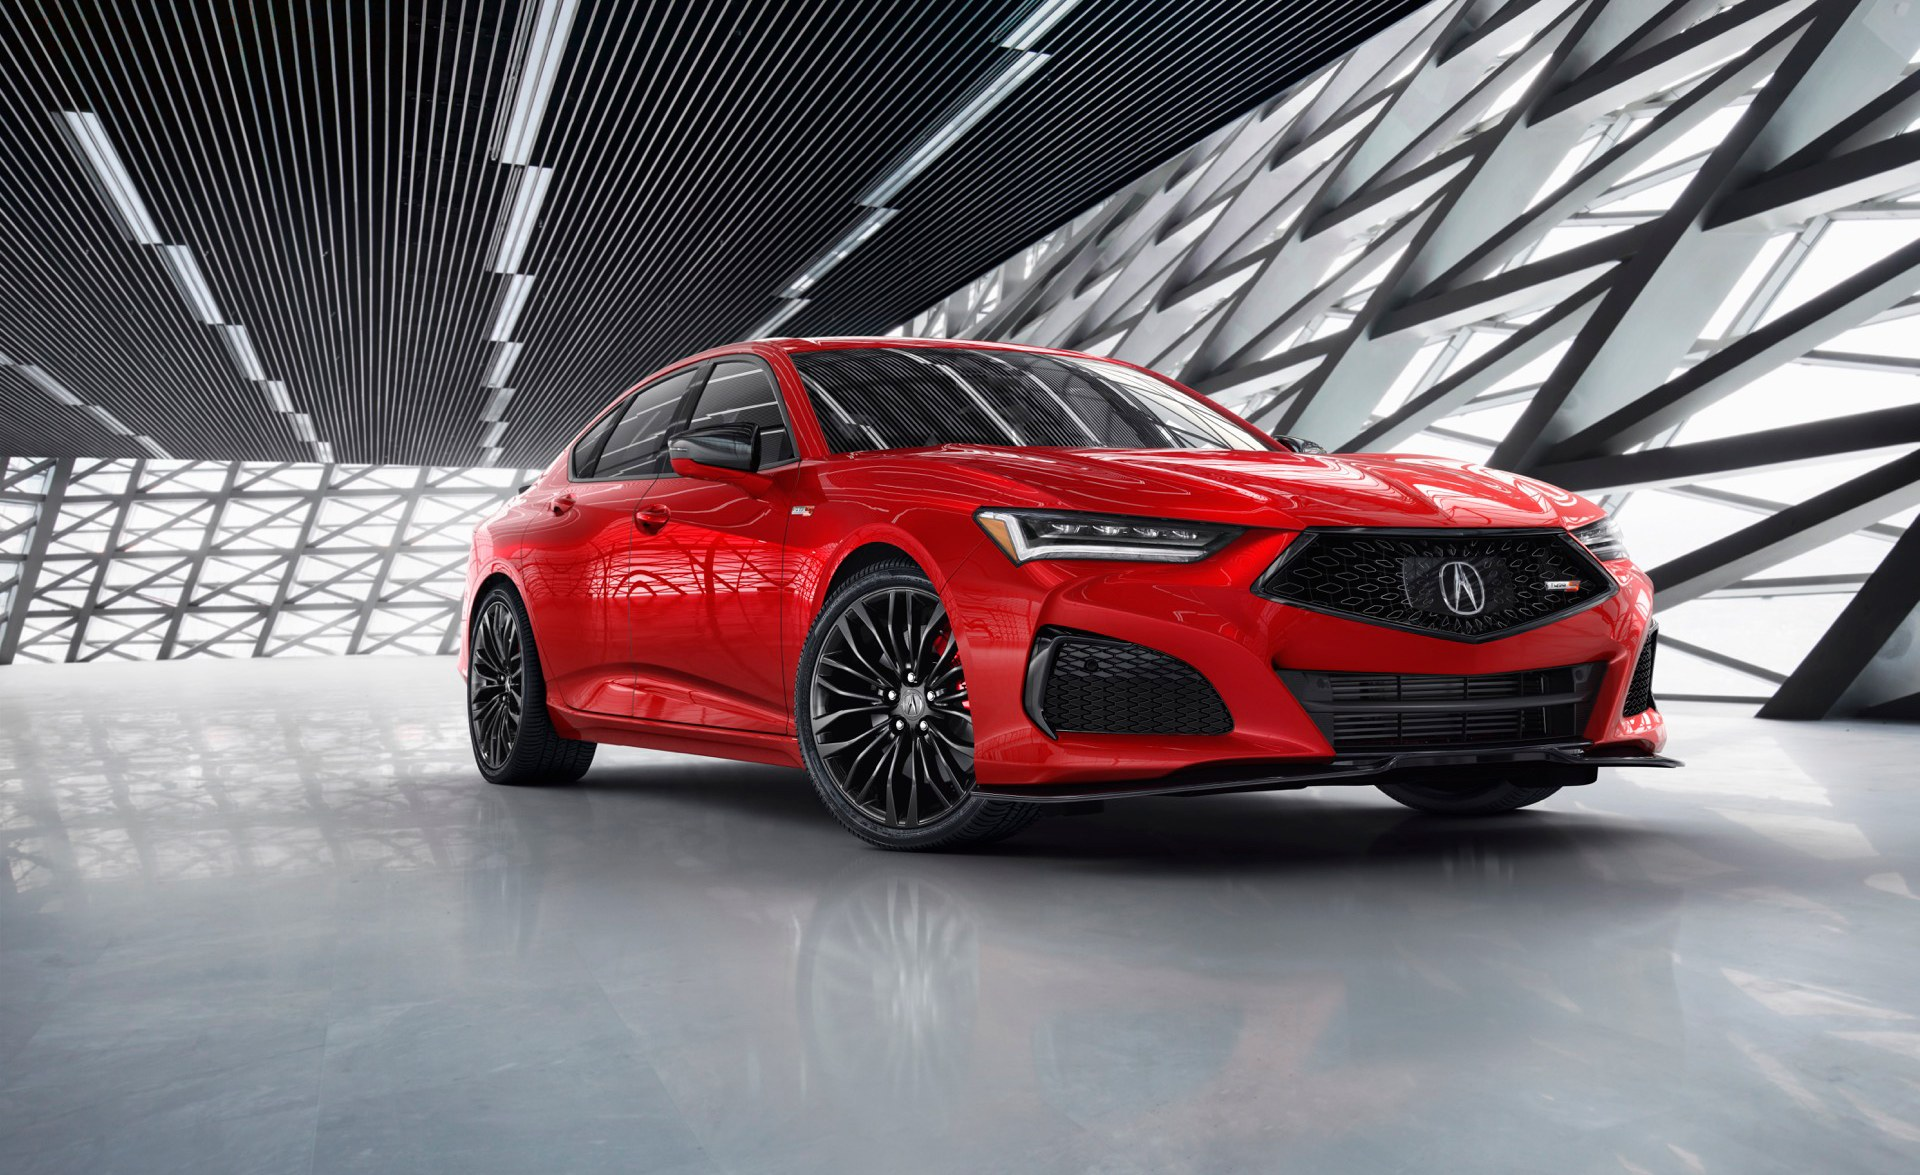 2021 Acura TLX Type S in red